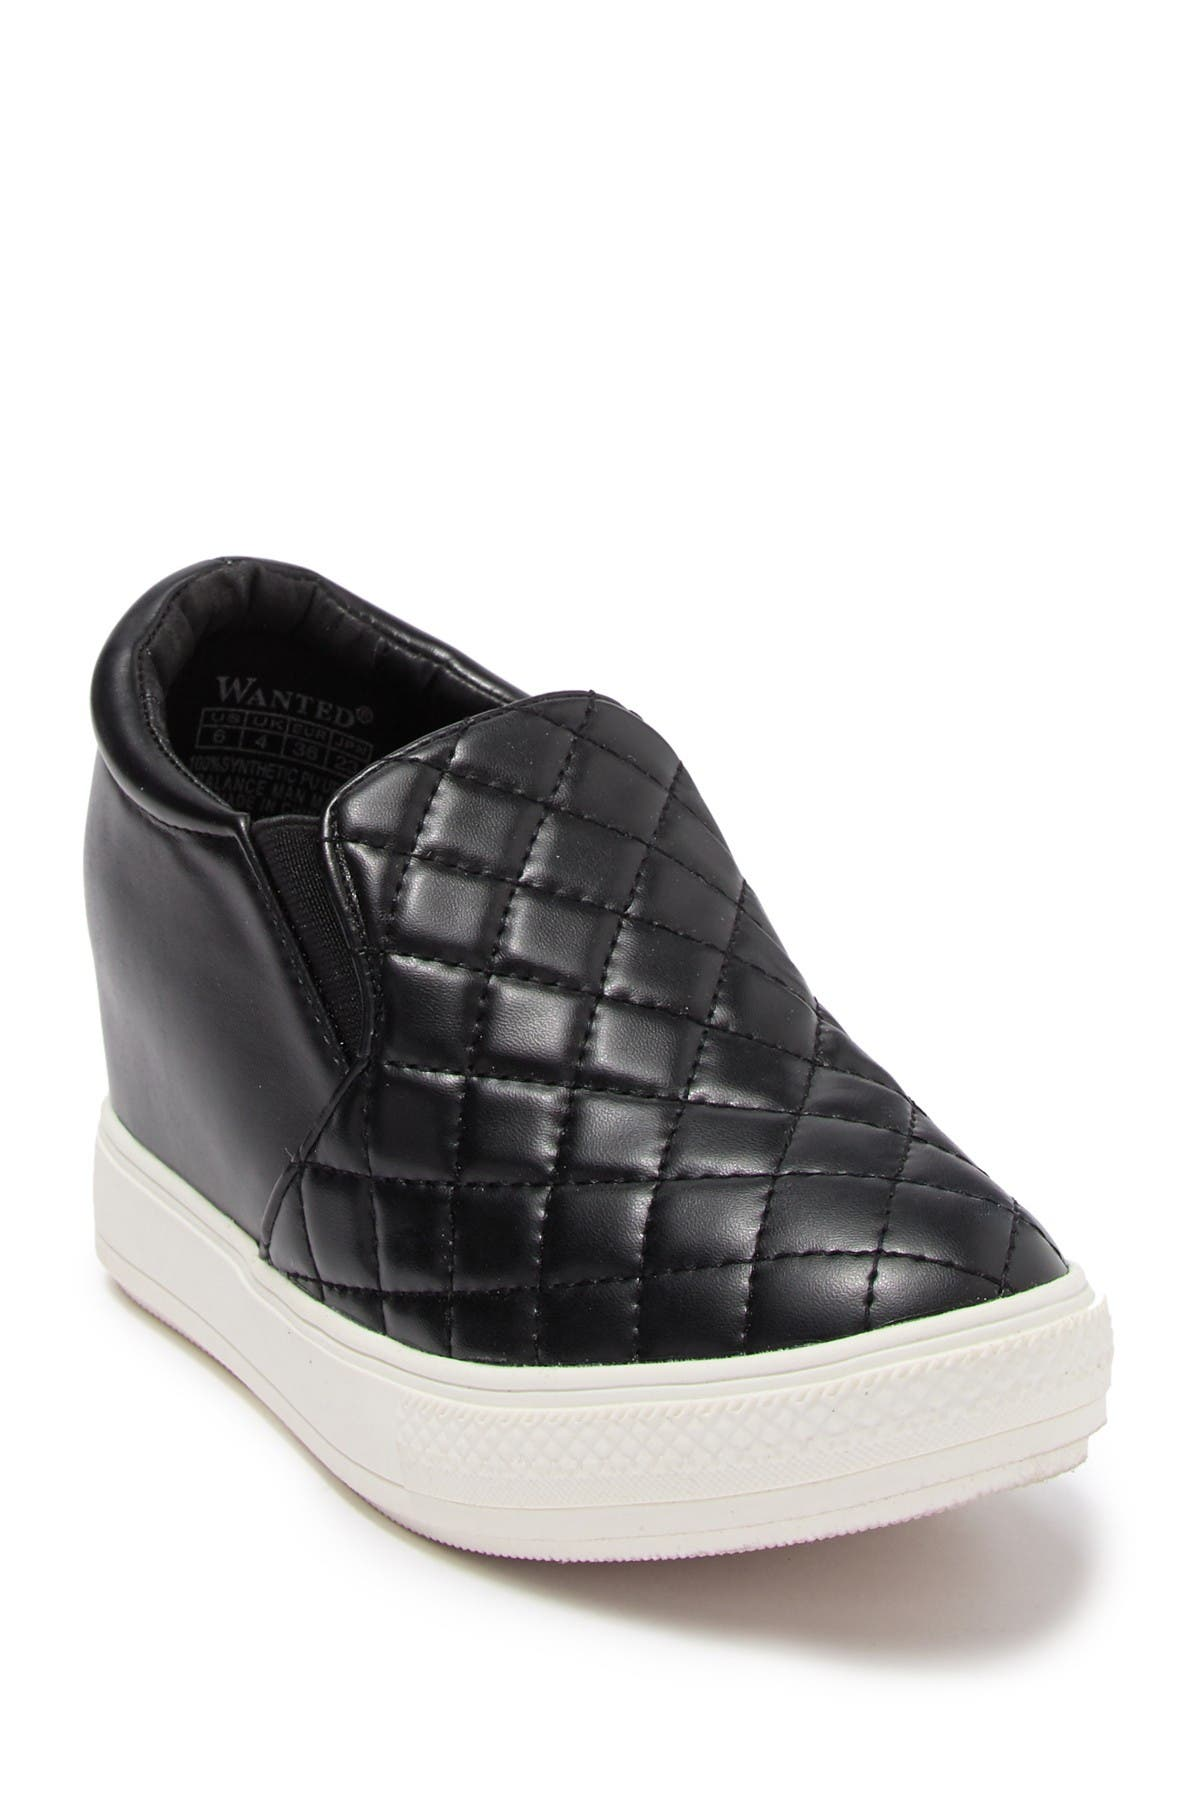 Wanted   Quilted Hidden Wedge Sneaker